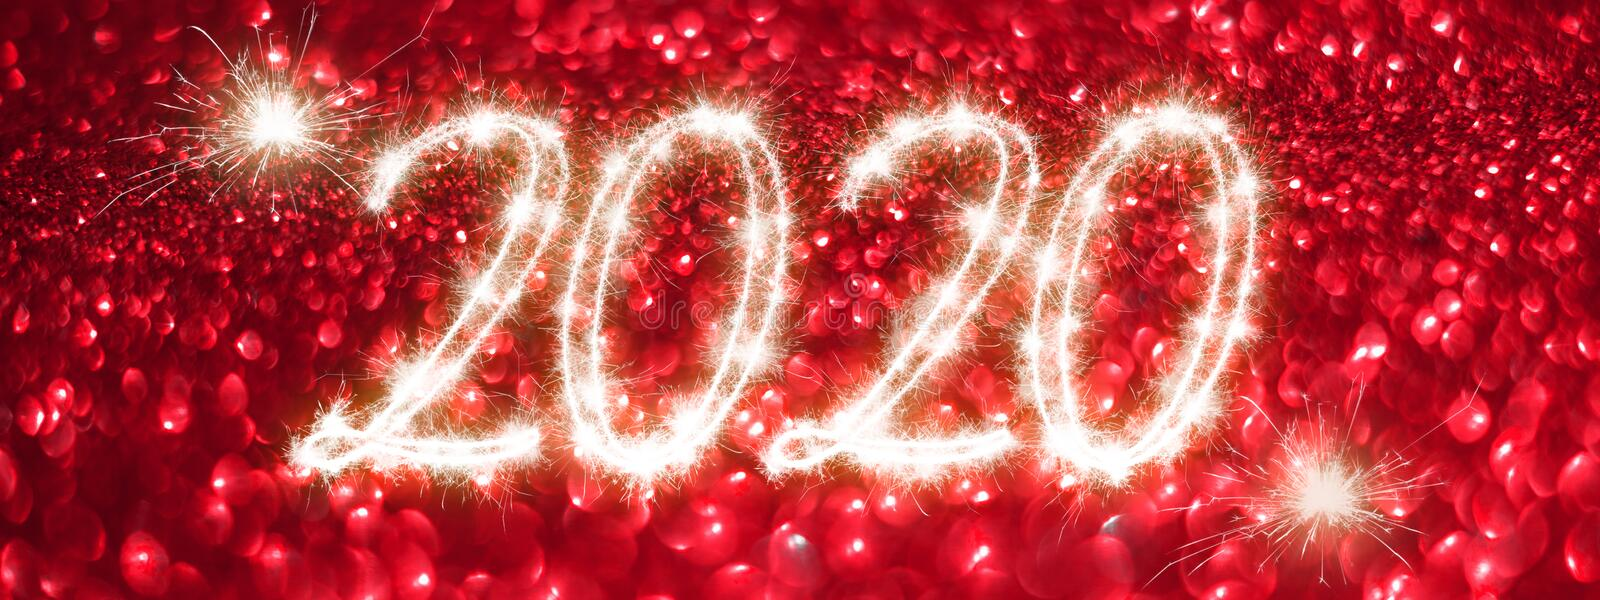 Happy New Year 2020 banner. Number 2020 written sparkling sparklers on red background. Suitable for christmas, new year, chinese stock image